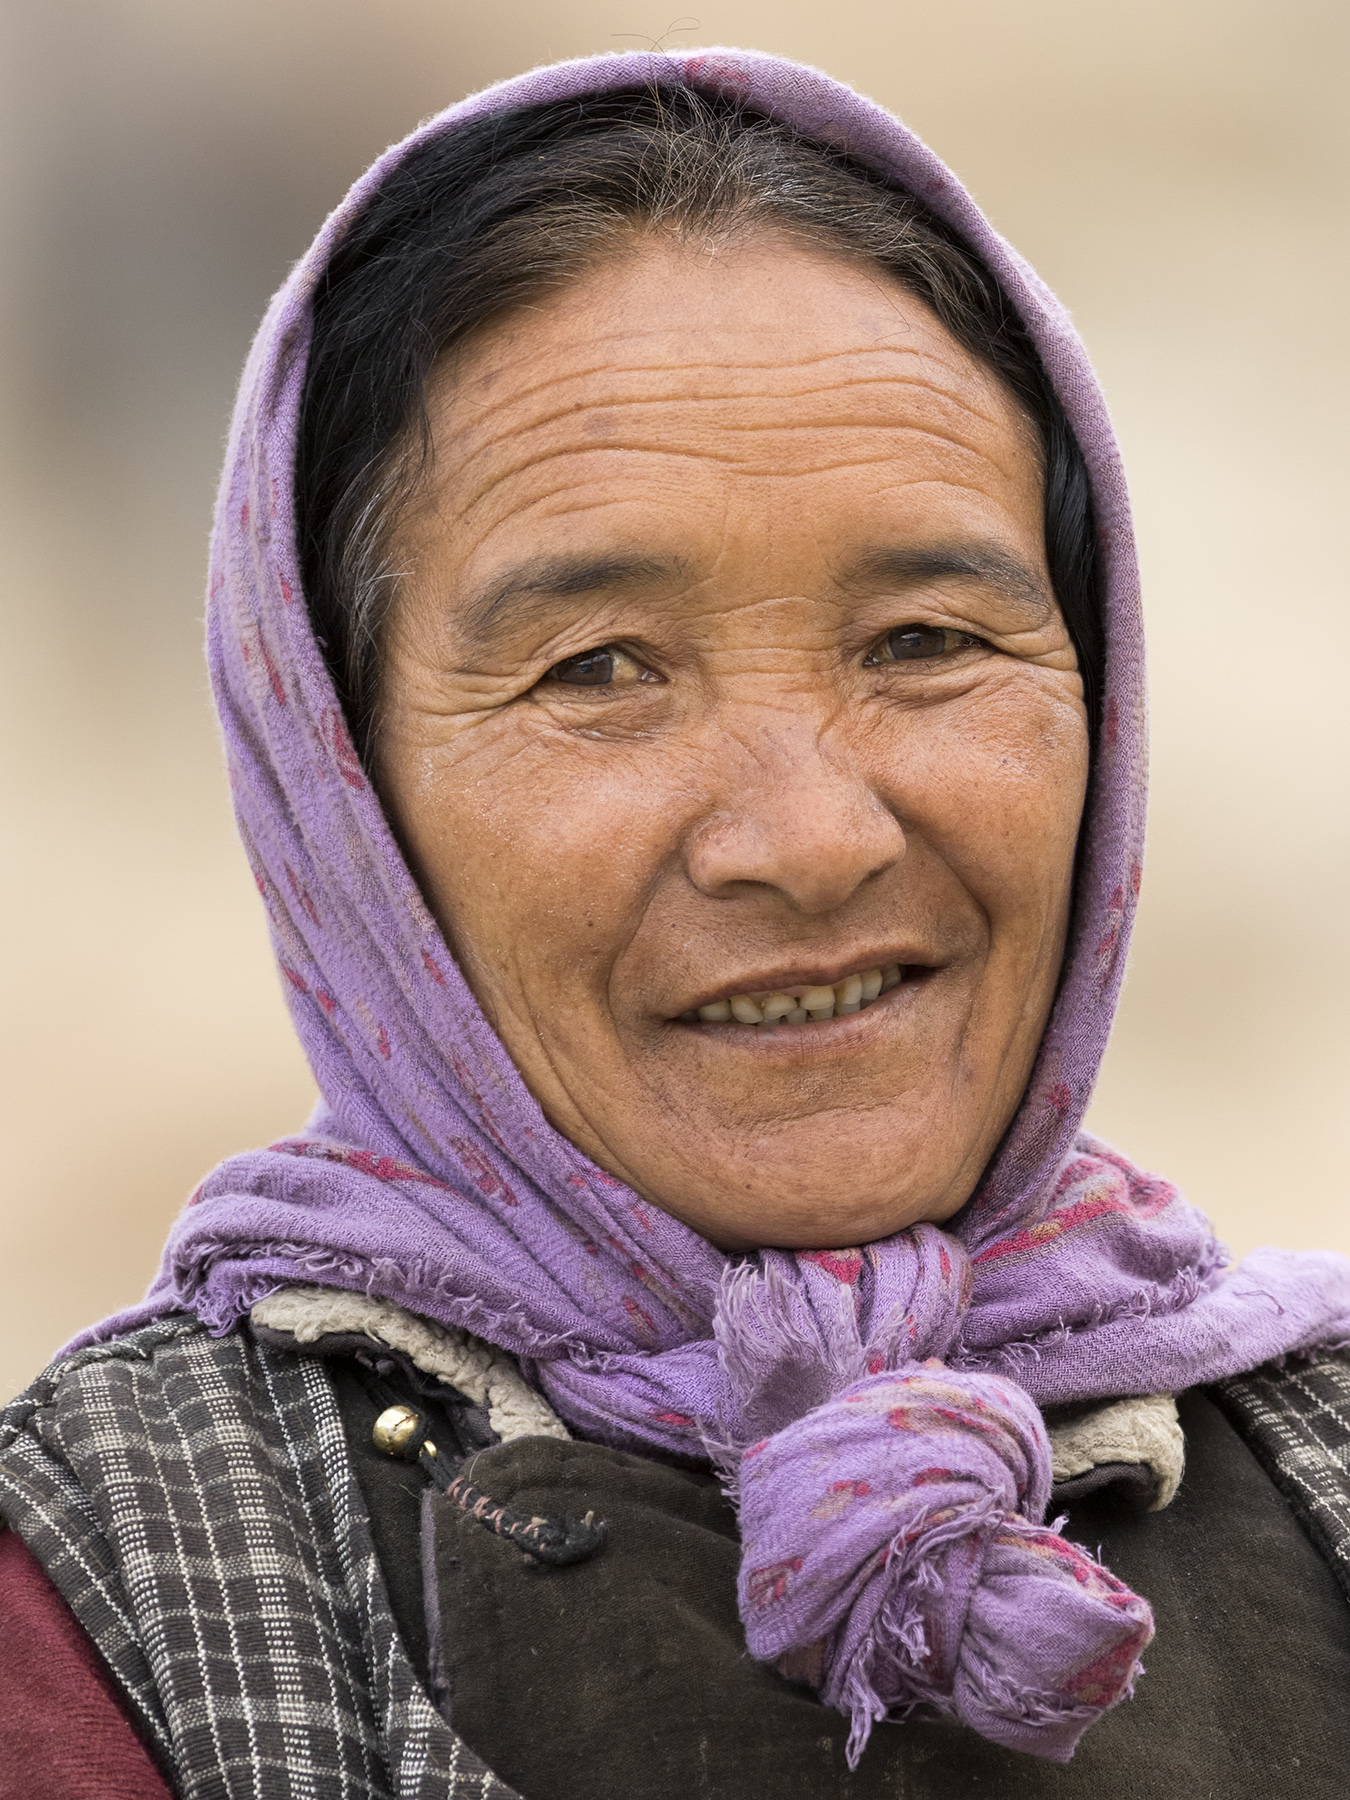 Brian_Jones_Women of India_Women of India - Ladakh_6.jpg